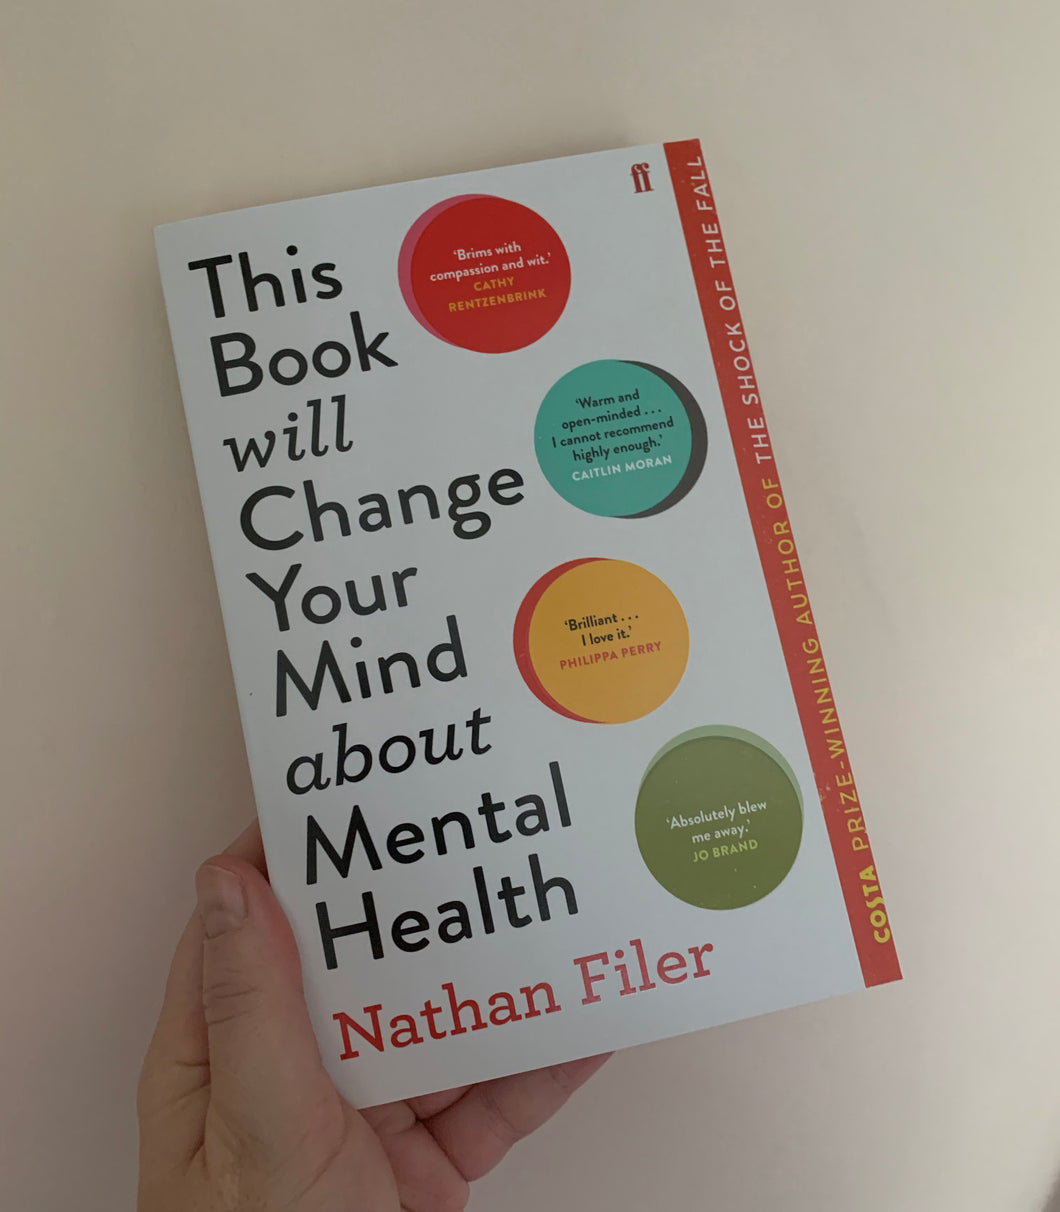 This Book Will Change Your Mind About Mental Health: A journey into the heartland of psychiatry (Paperback)